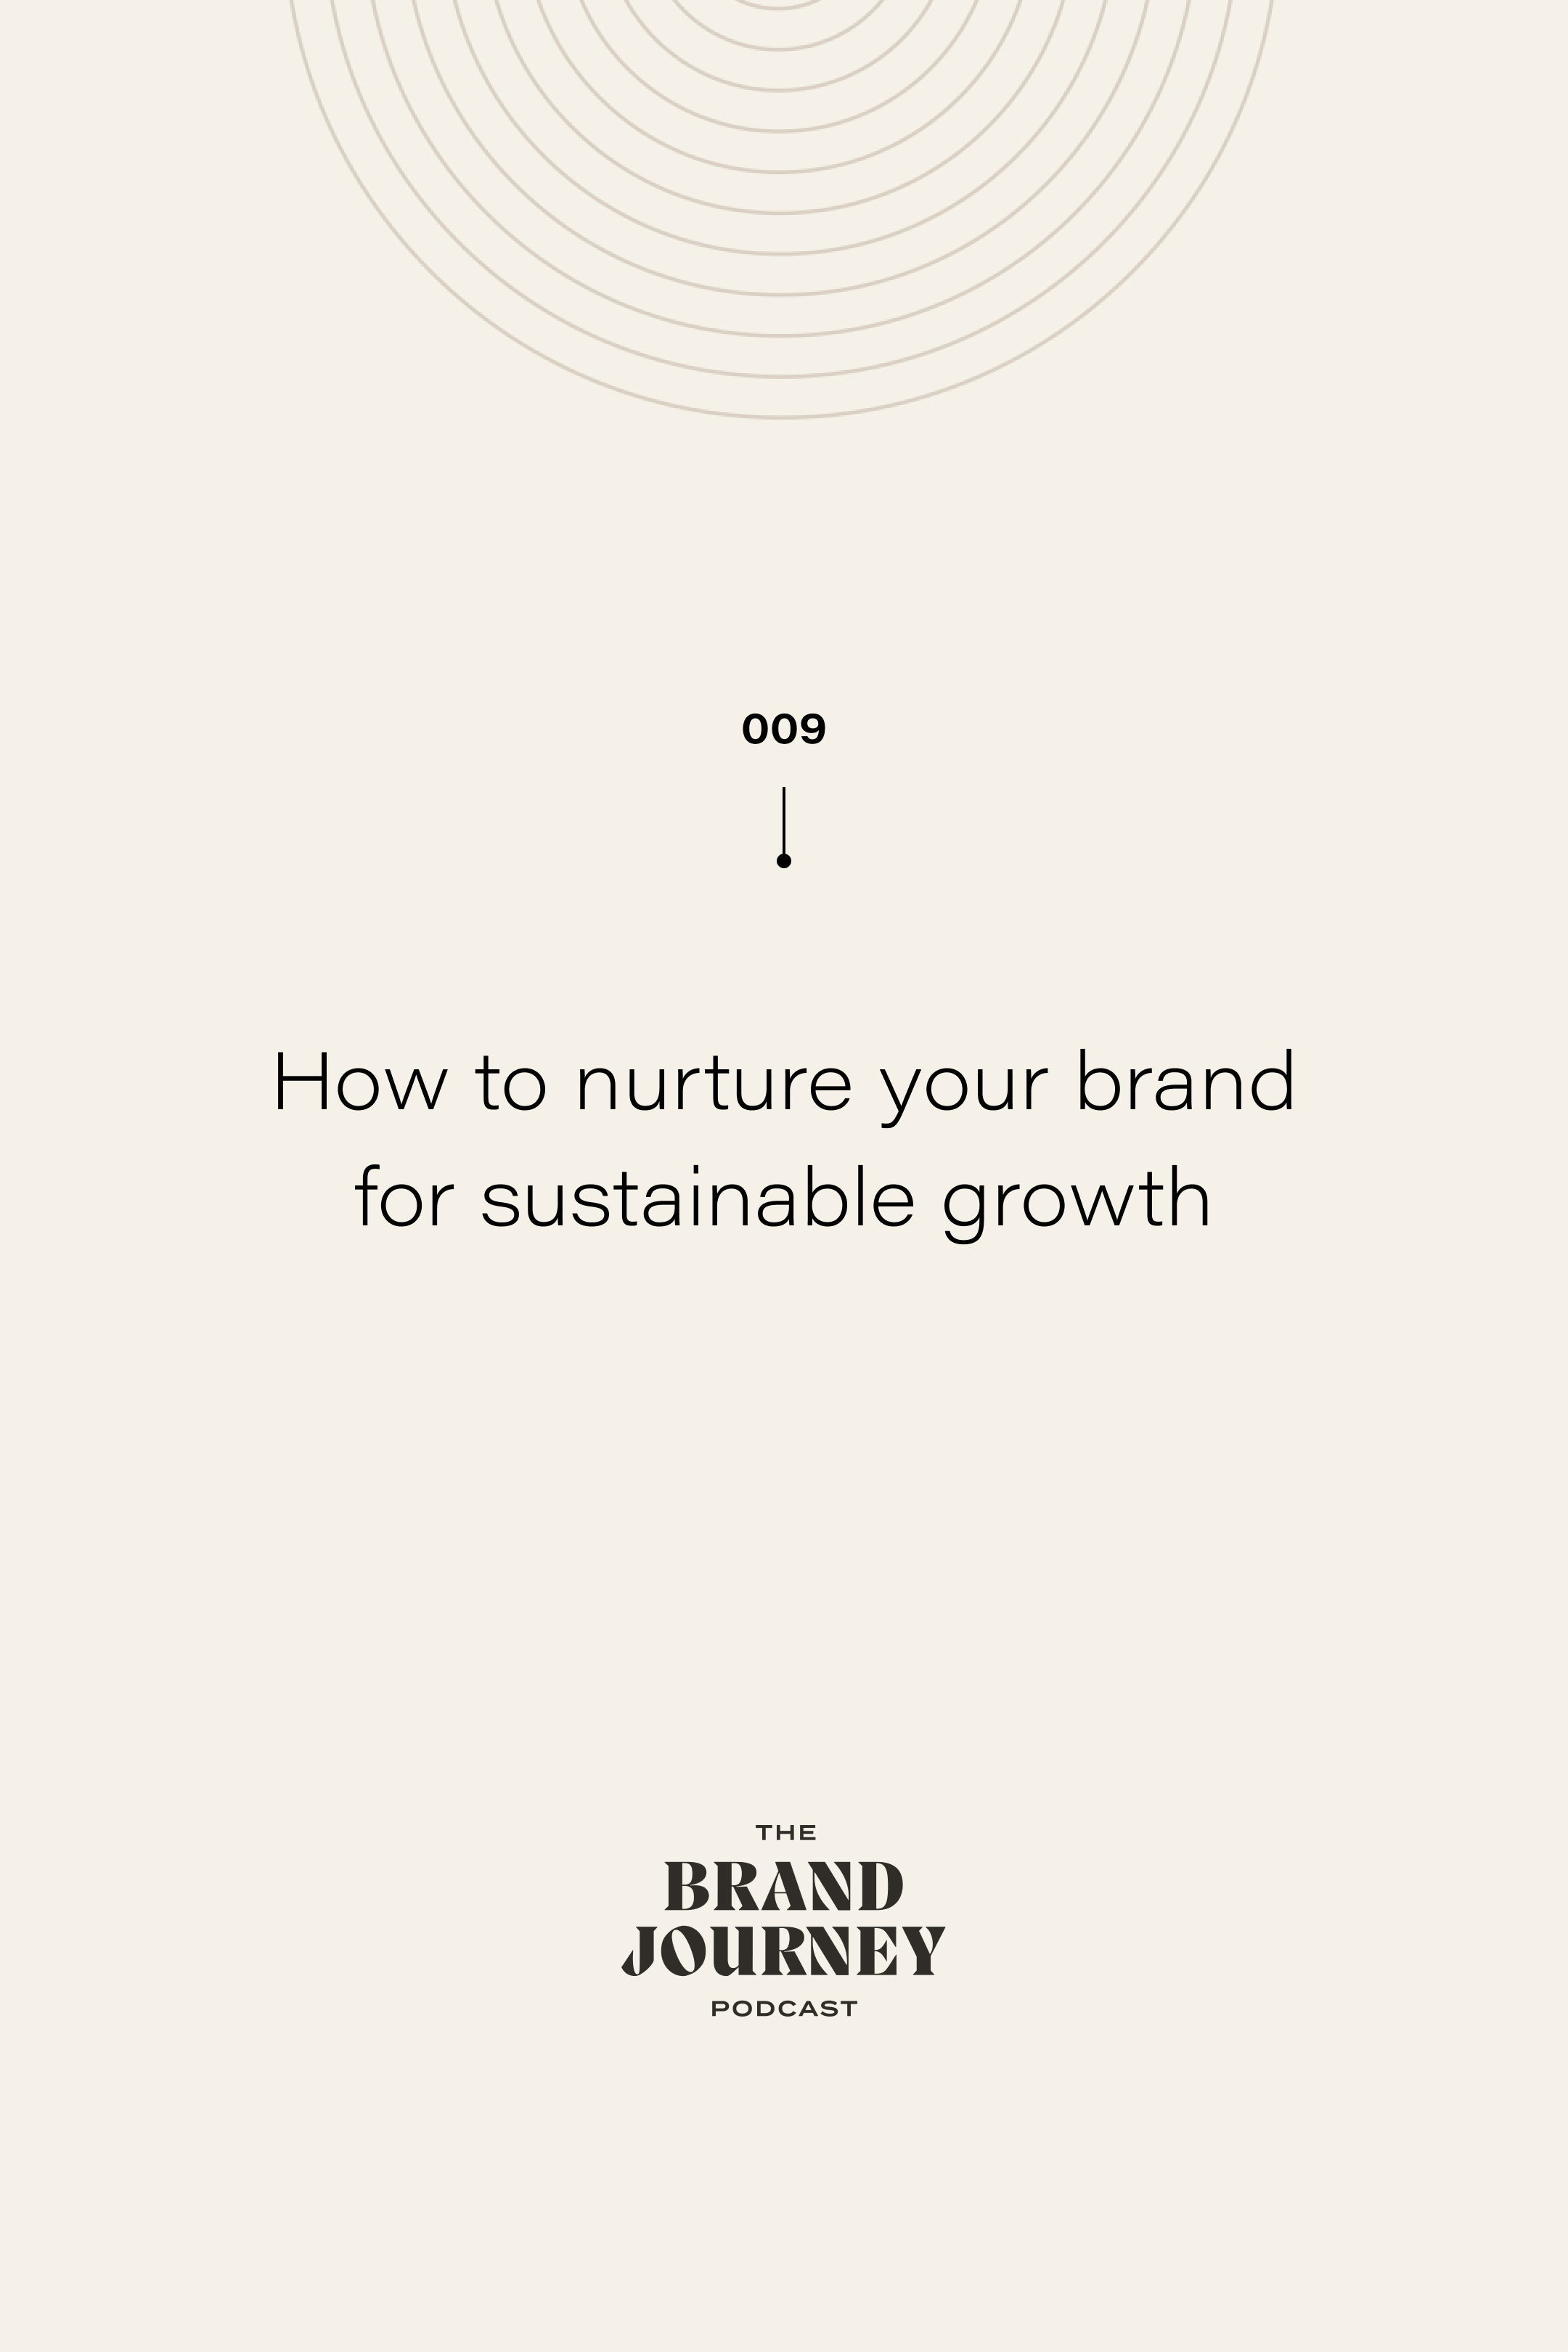 How to nurture your brand for sustainable growth